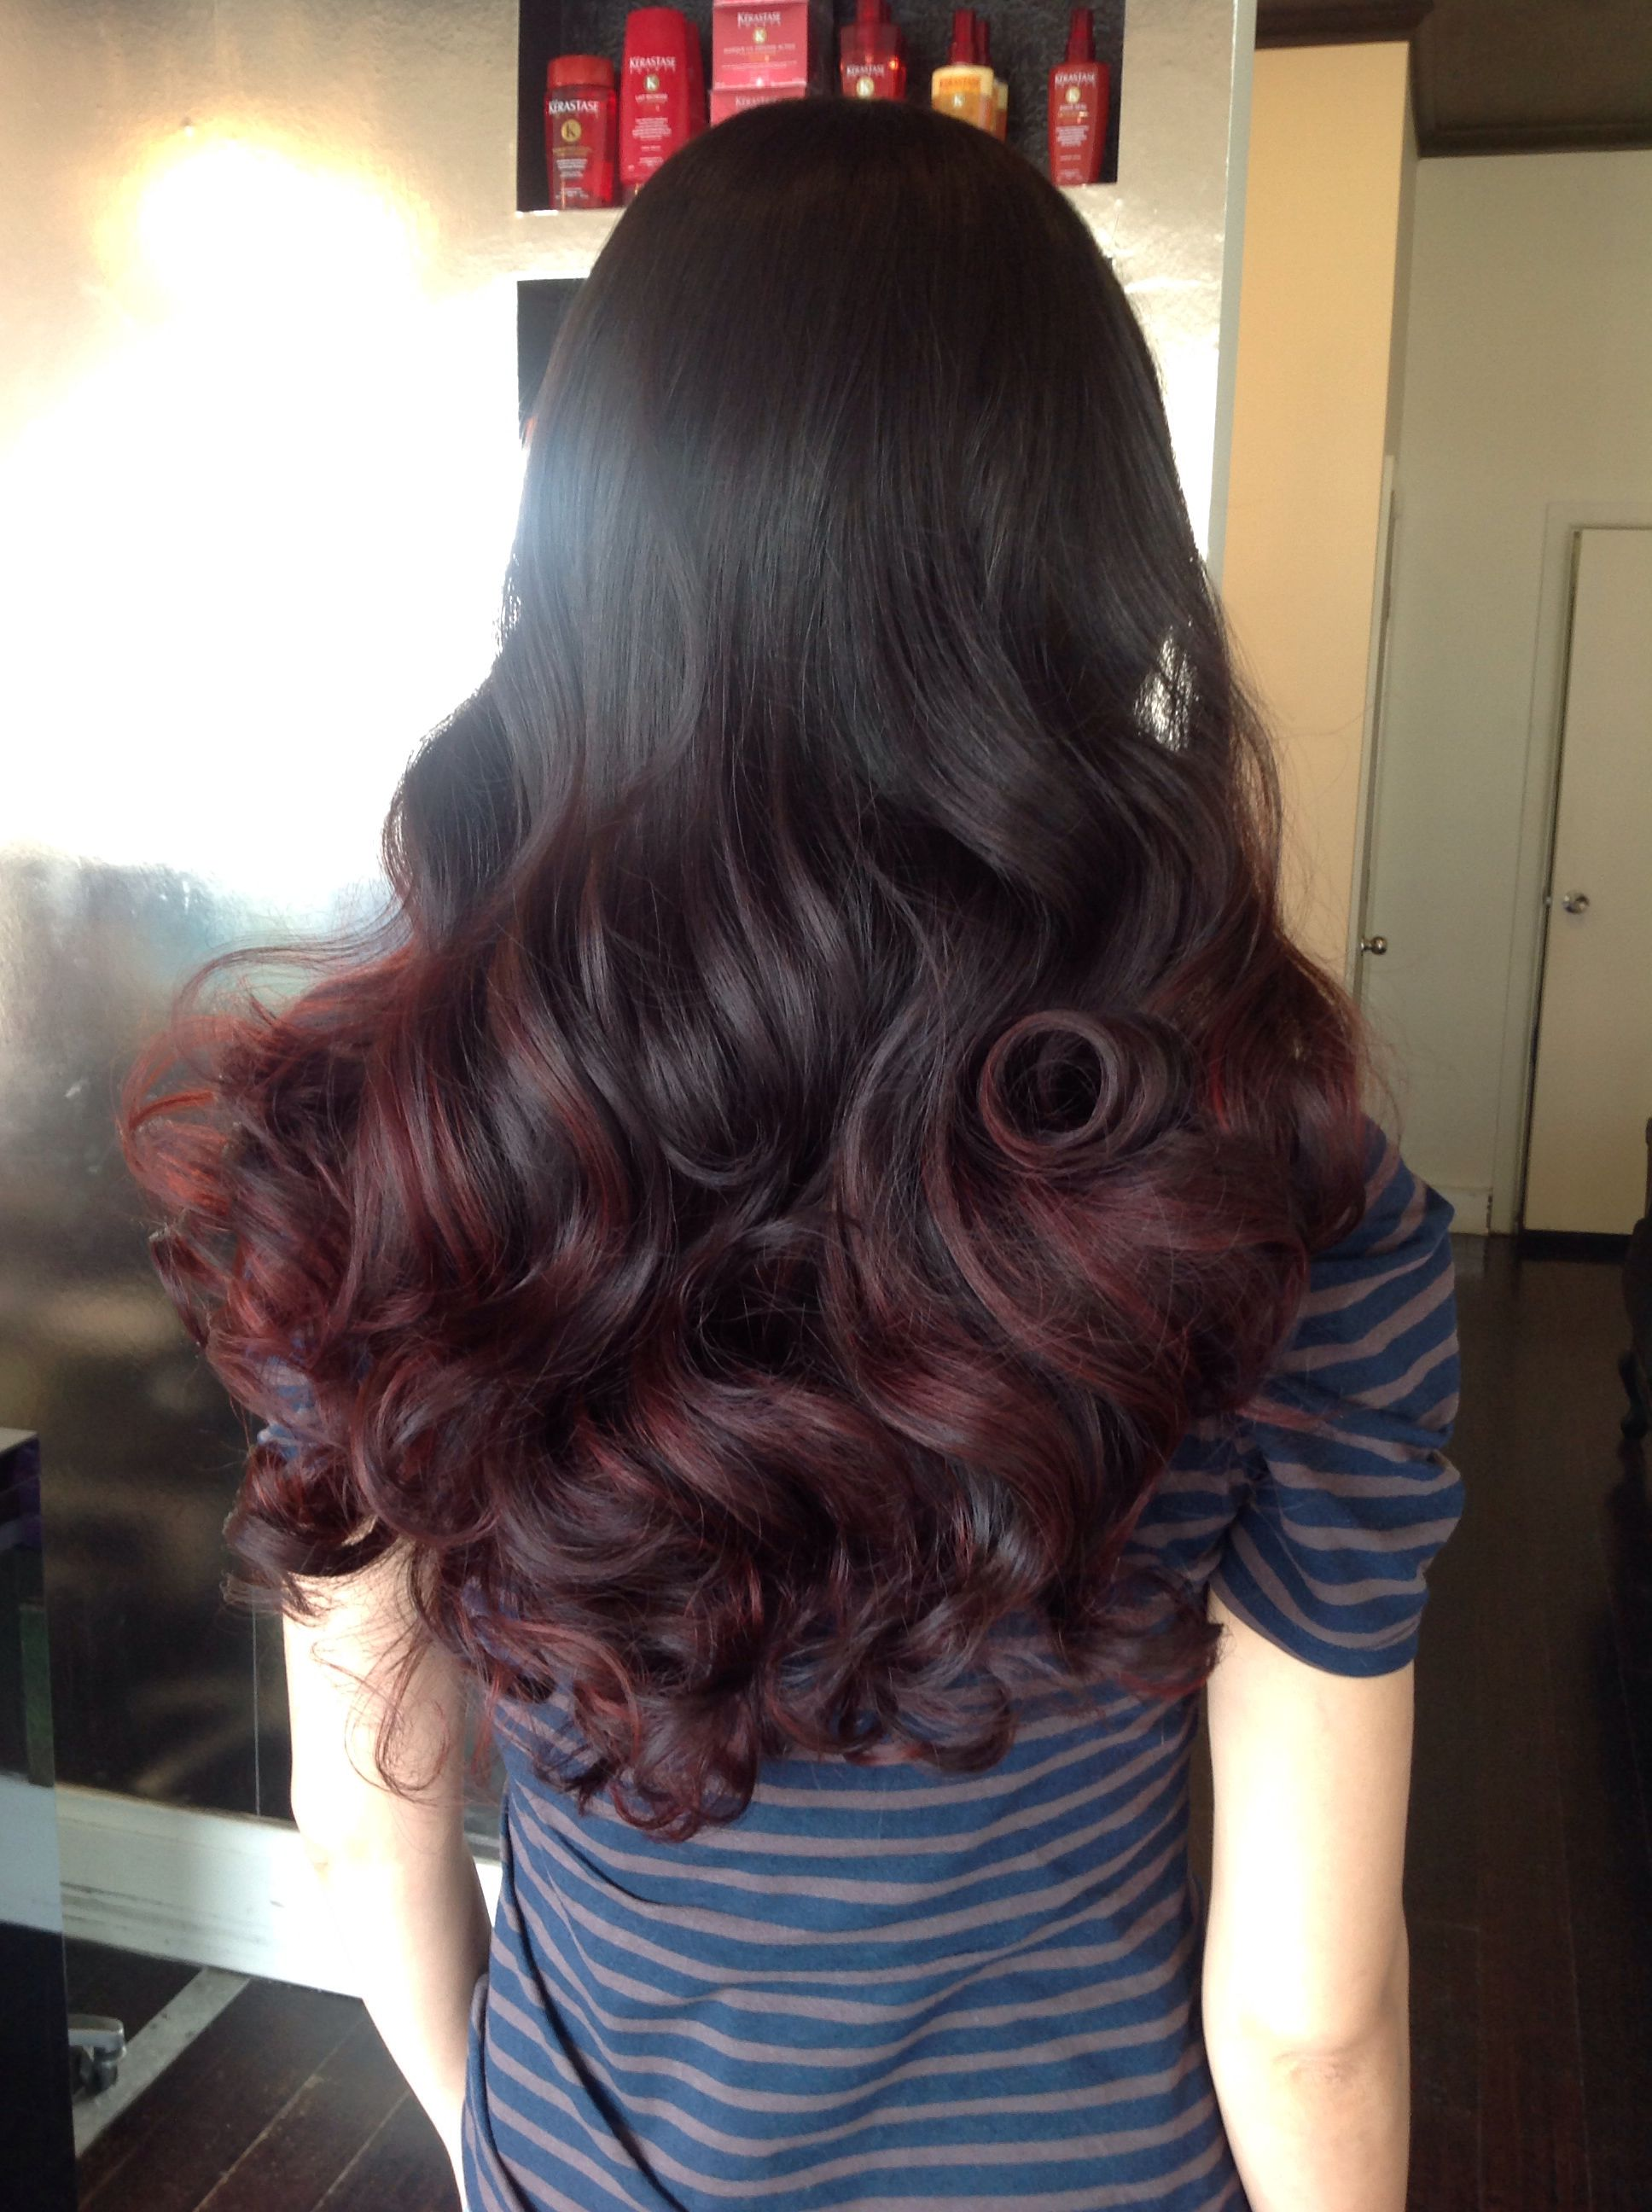 Pin By Cocohoney Salon On Cocohoney Salon Dark Red Hair Light Brown Balayage Hair Styles